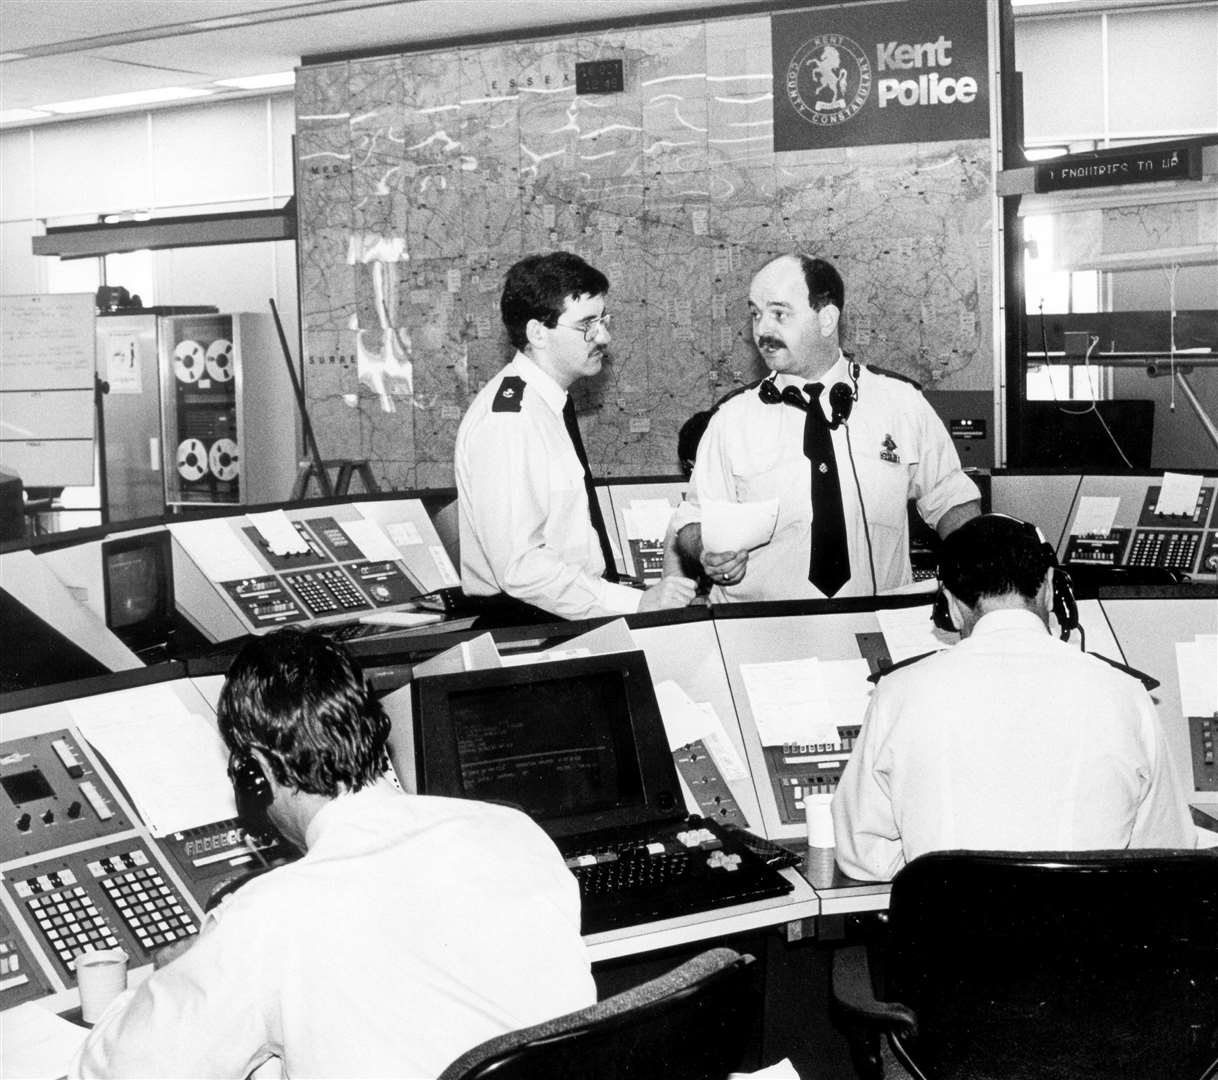 A photograph taken of the control room inside the Kent Police headquarters in 1987